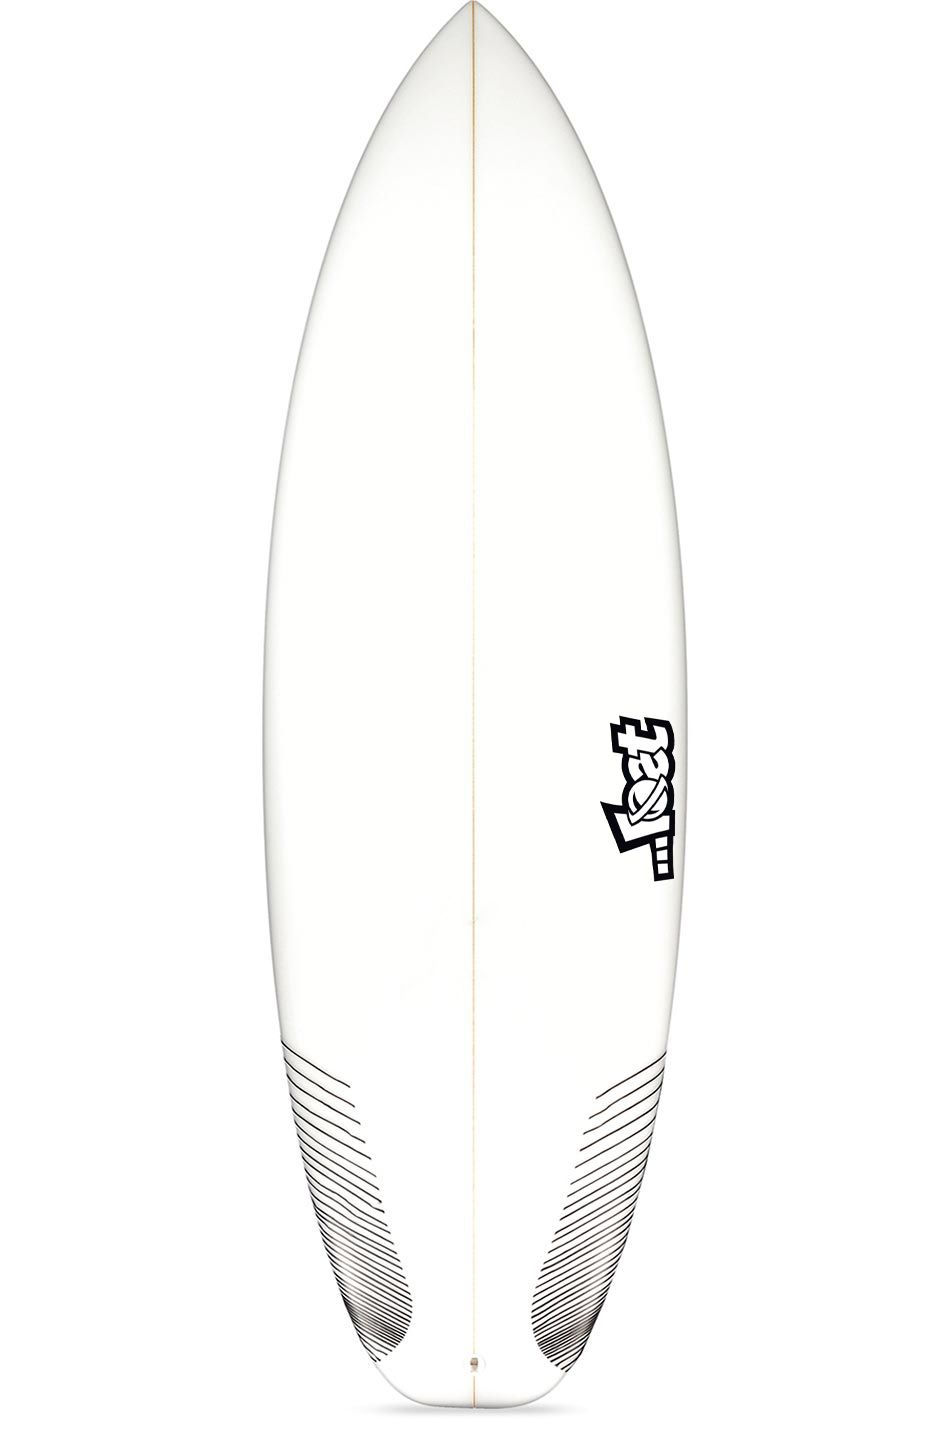 Lost Surf Board 5'11 PUDDLE JUMPER HP Squash Tail - White FCS II Multisystem 5ft11